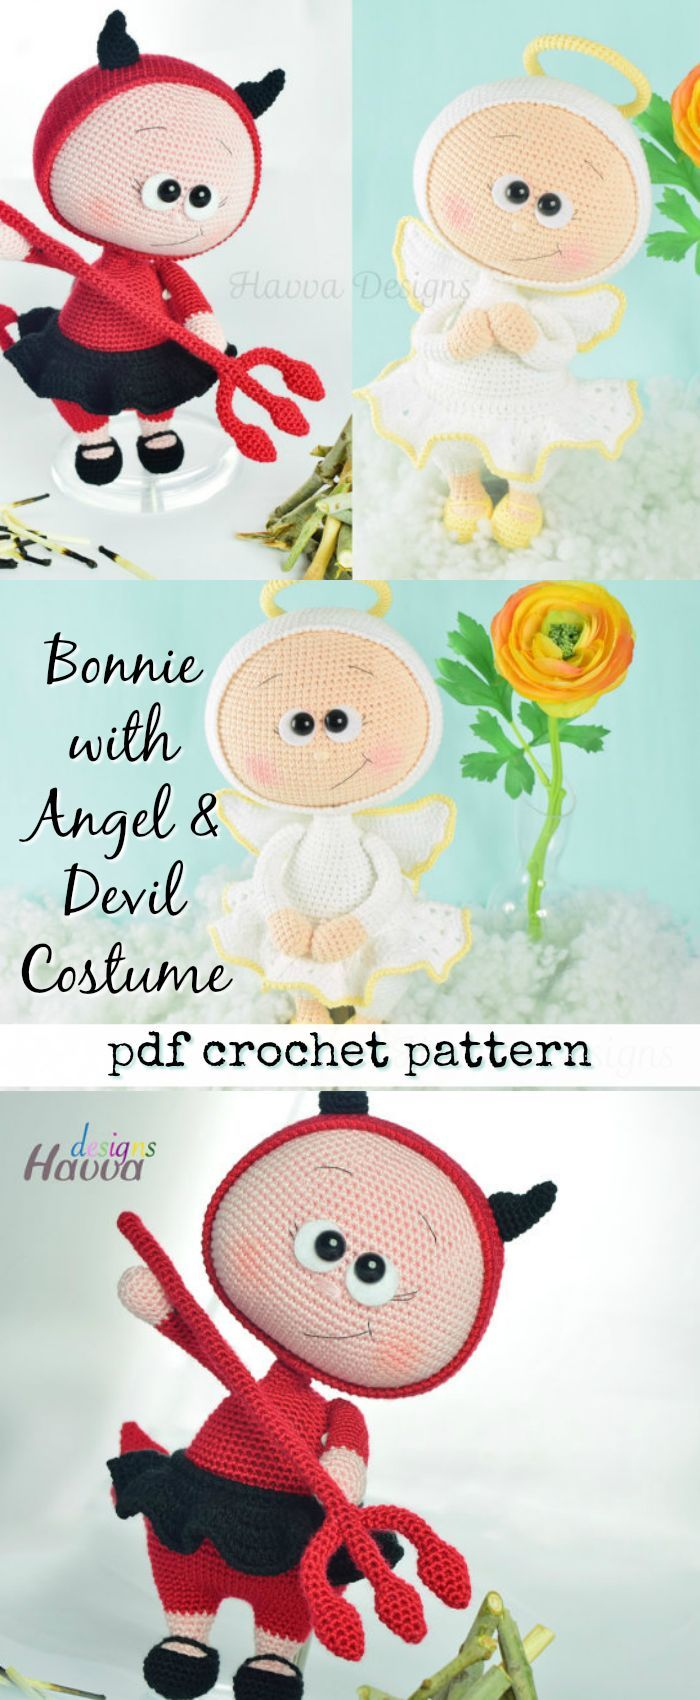 """Bonnie"" crochet doll with angel costume and devil costume. Cute little toys to make DIY. #etsy #ad #doll"